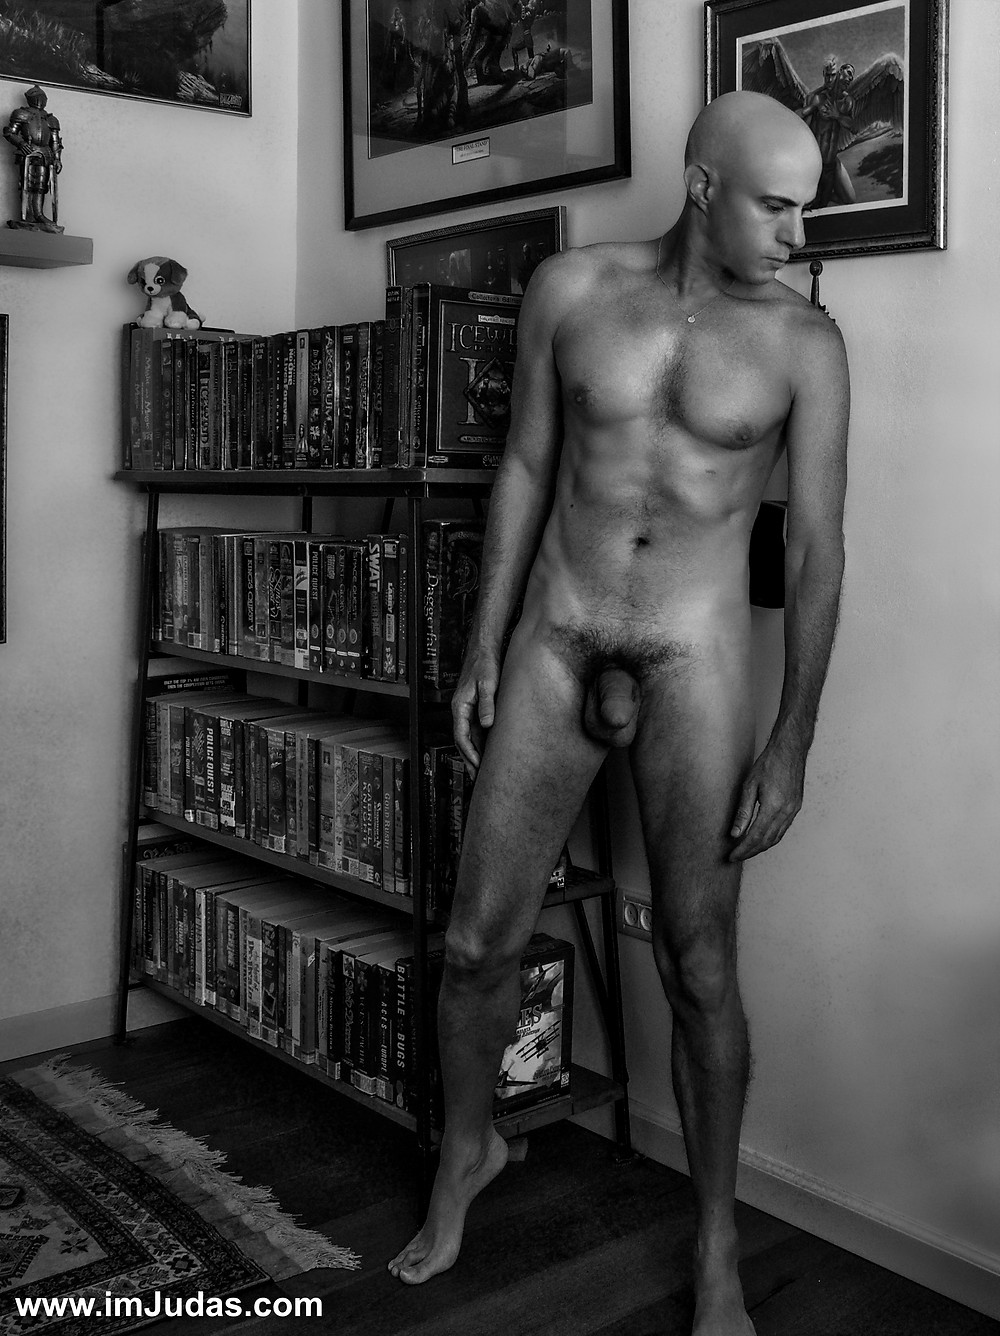 Naked indoors